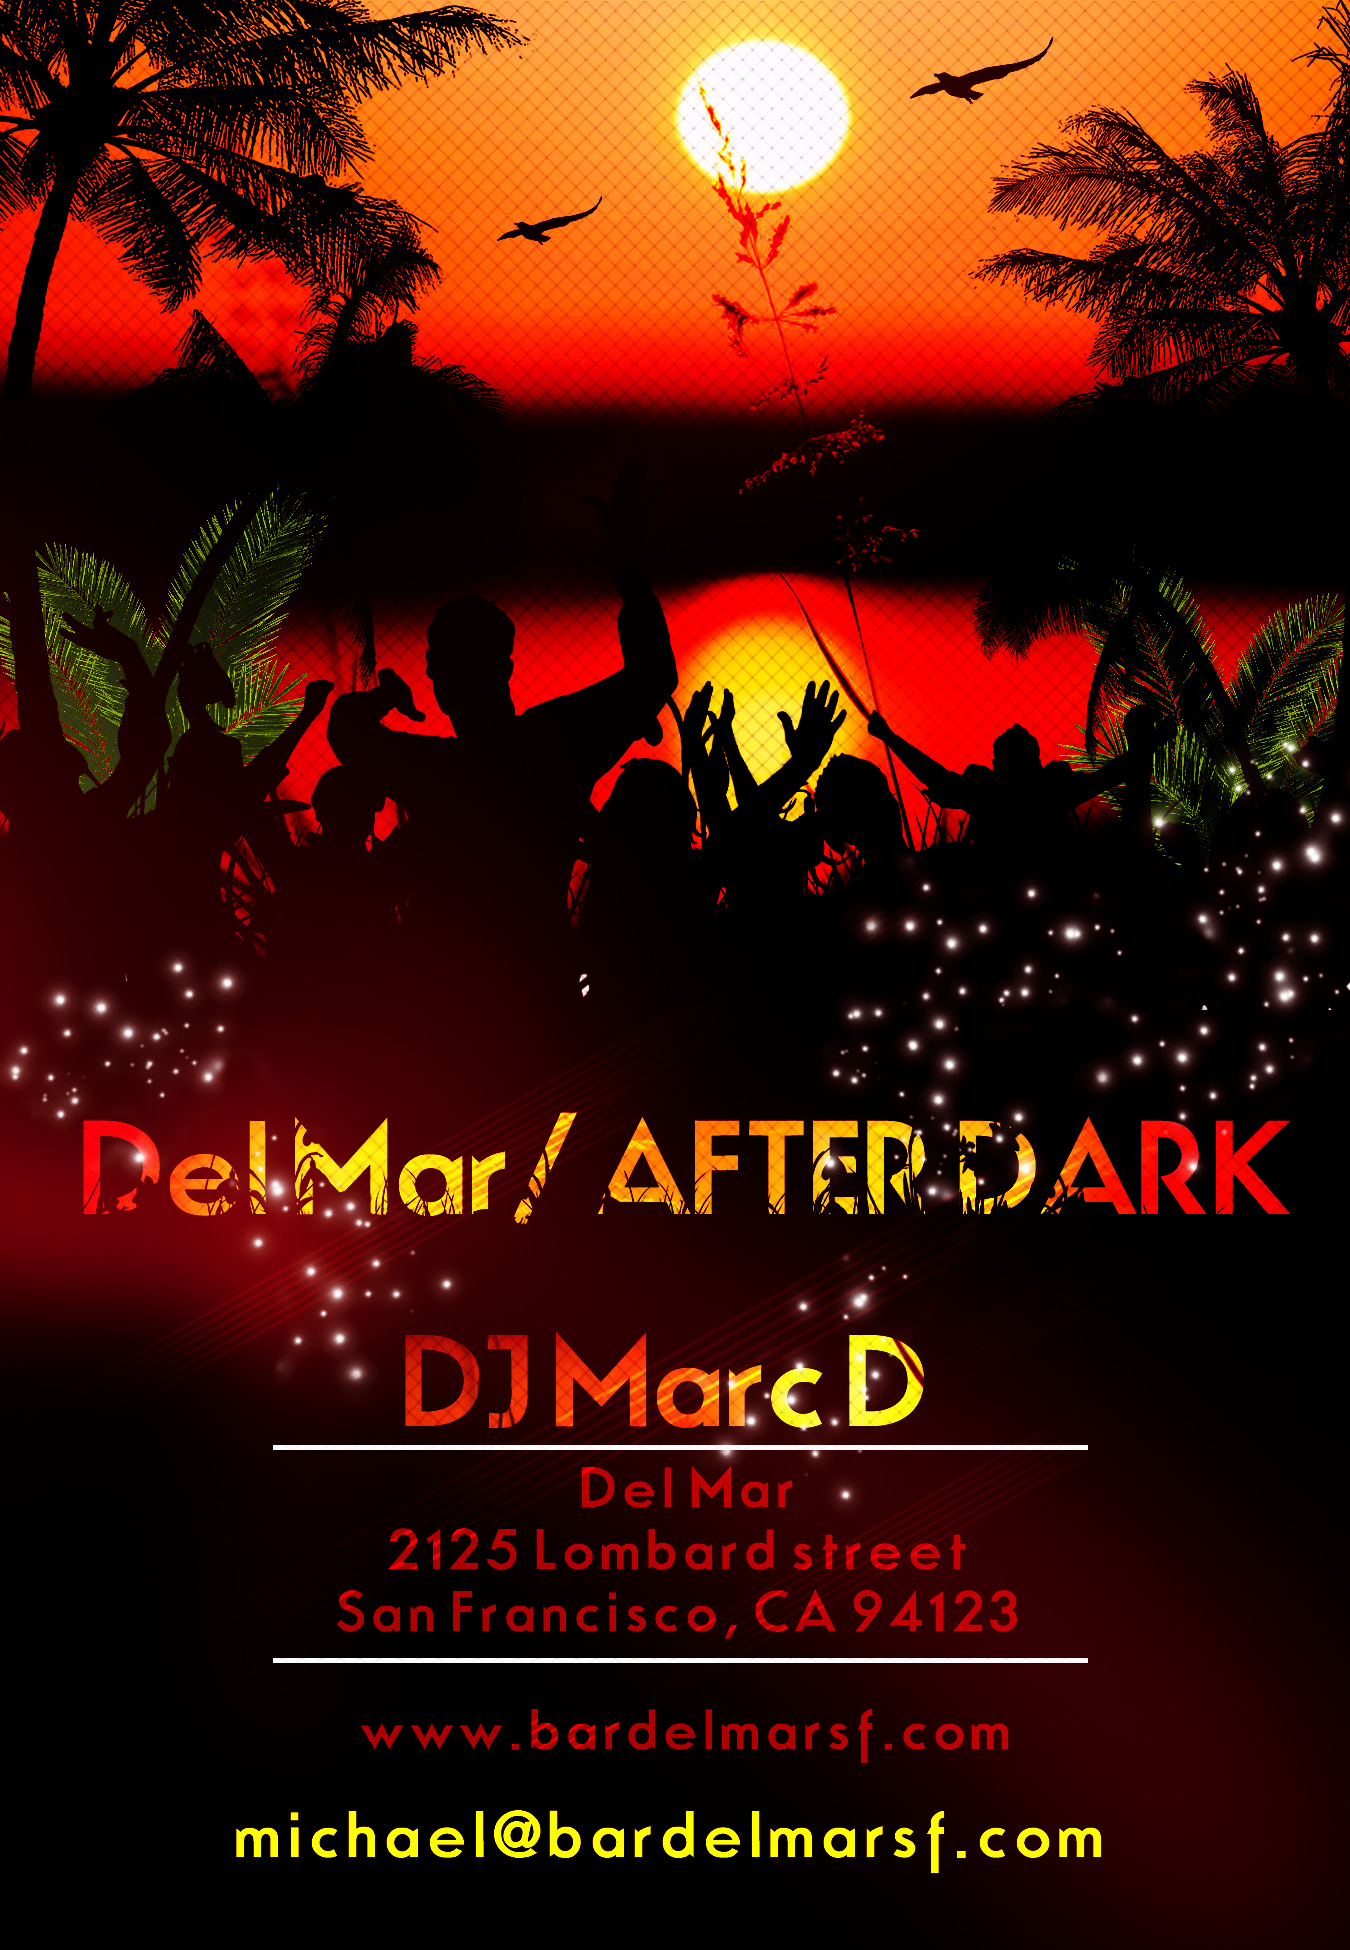 Del Mar After Dark flyer DJ Marc D.jpg